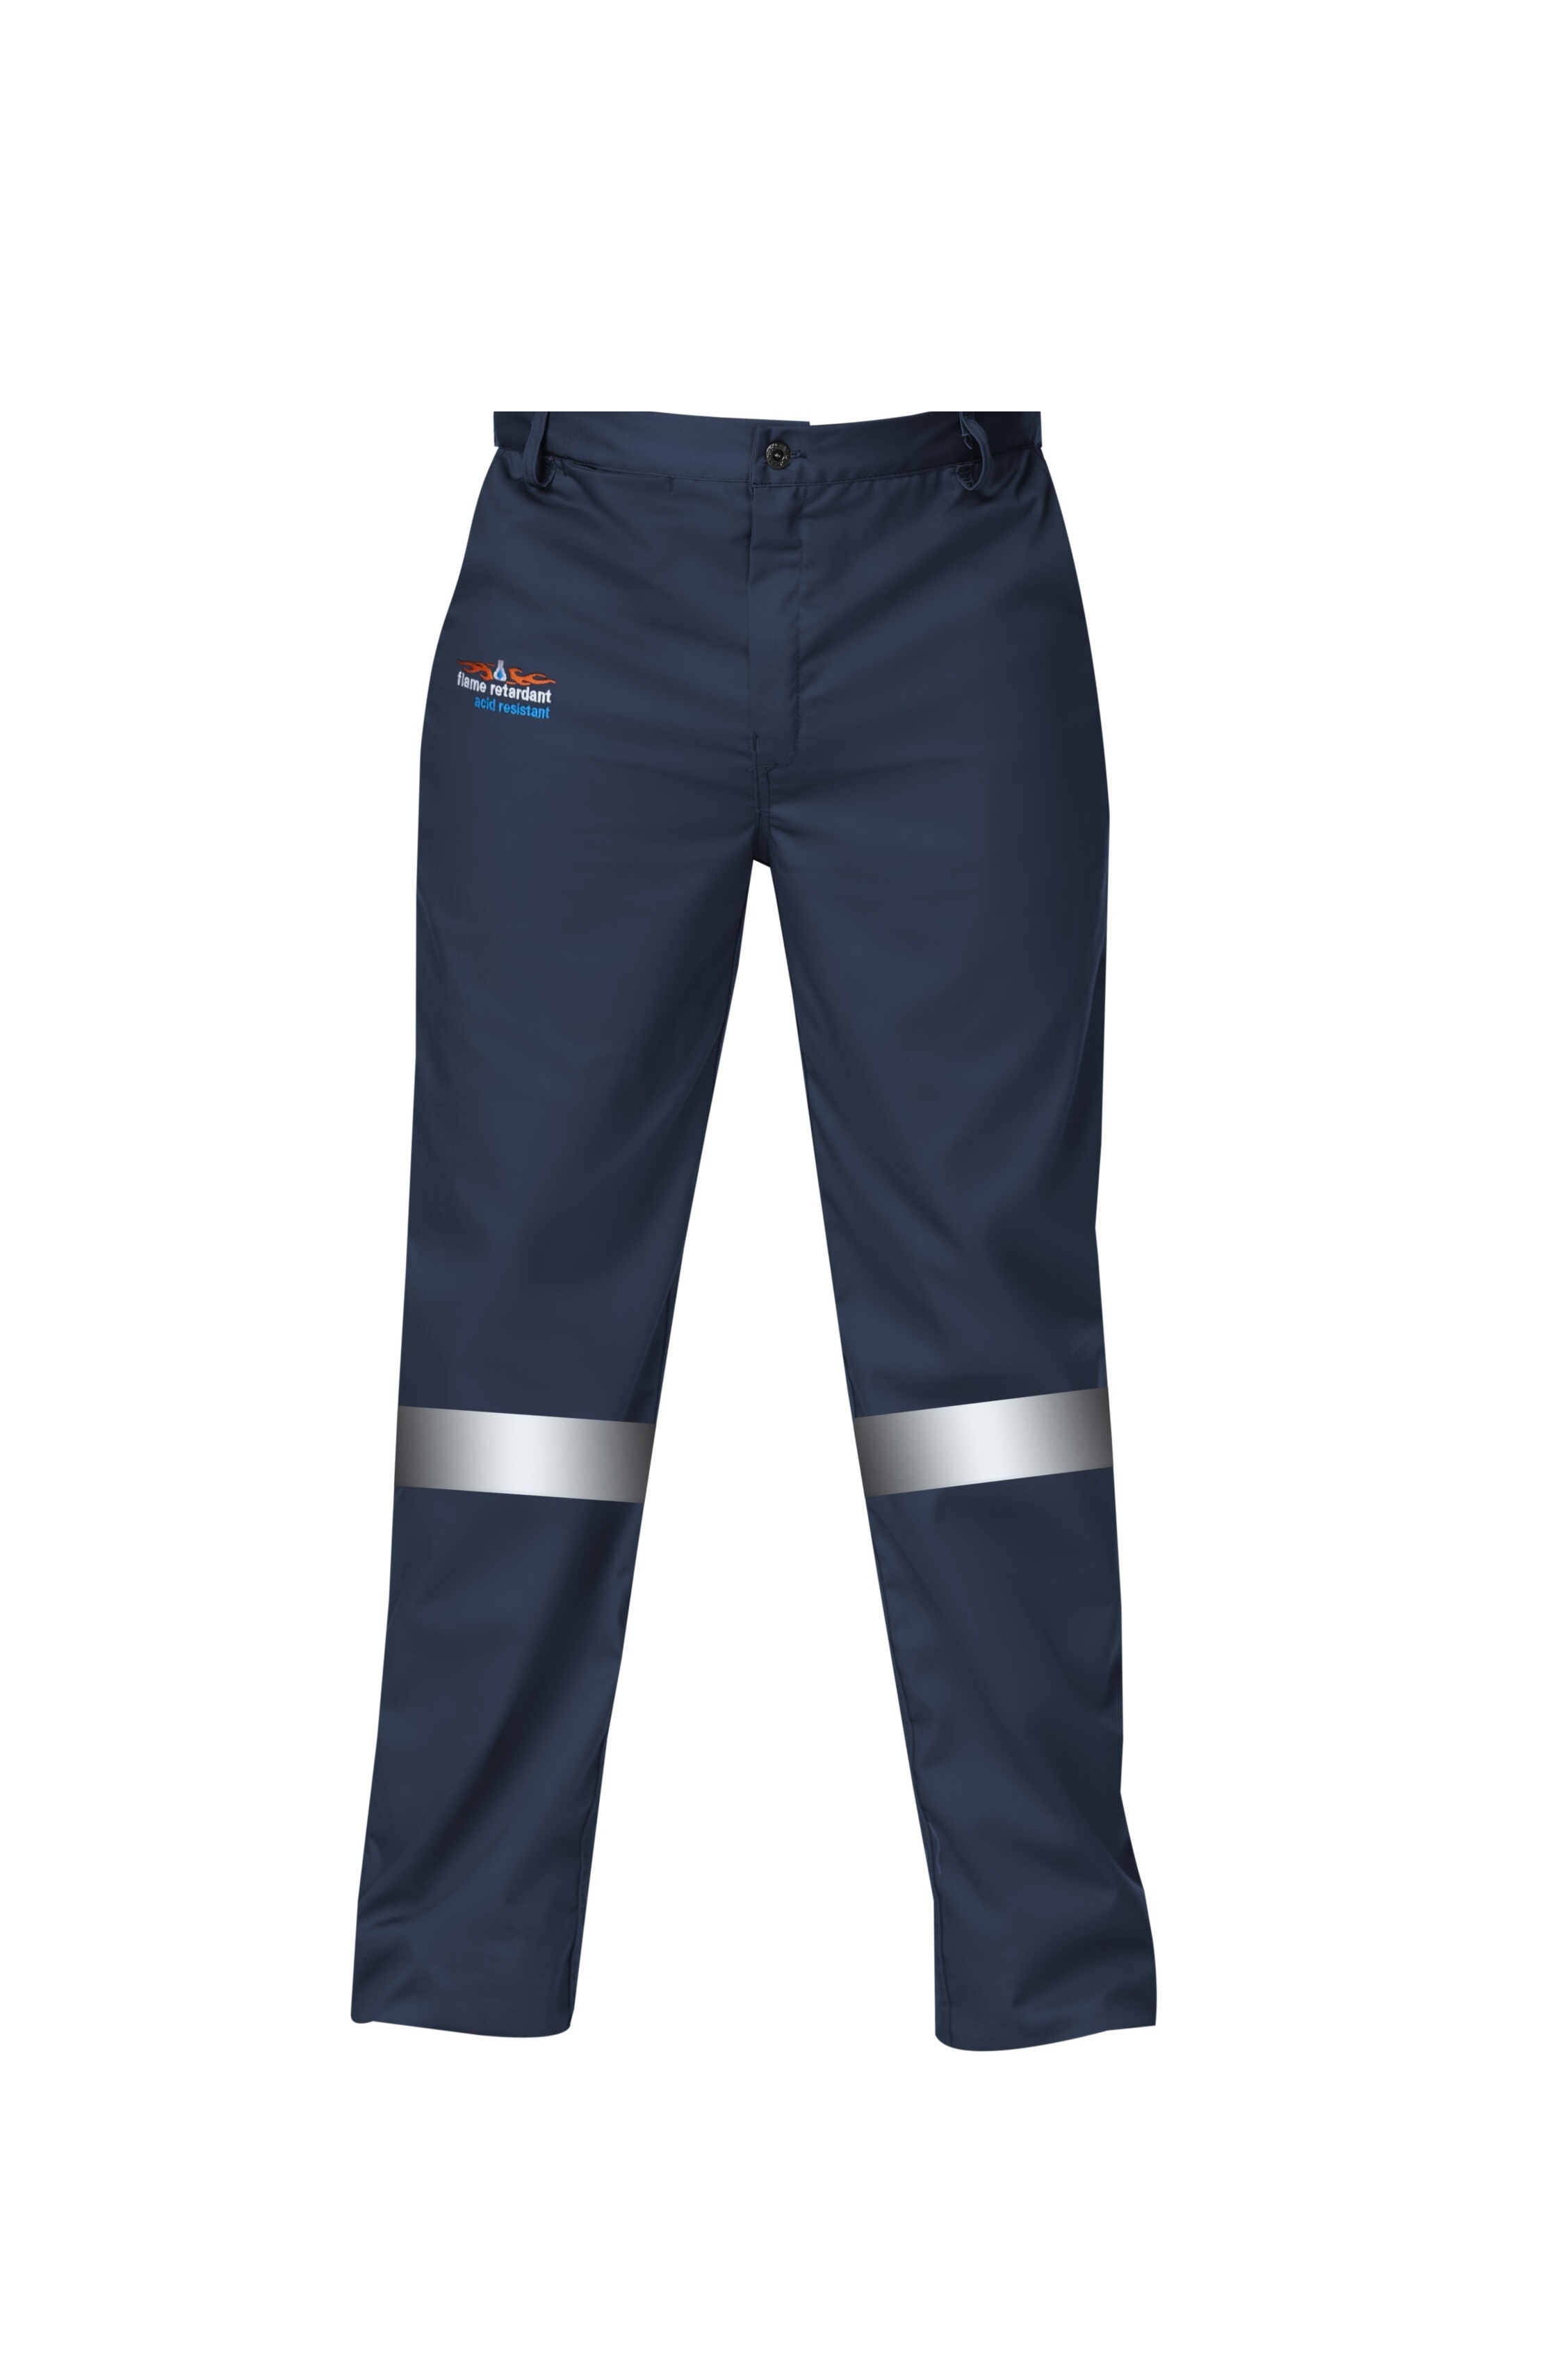 Endurance Navy Blue D59 Flame/Acid Conti Pants (with Reflective) Size  32